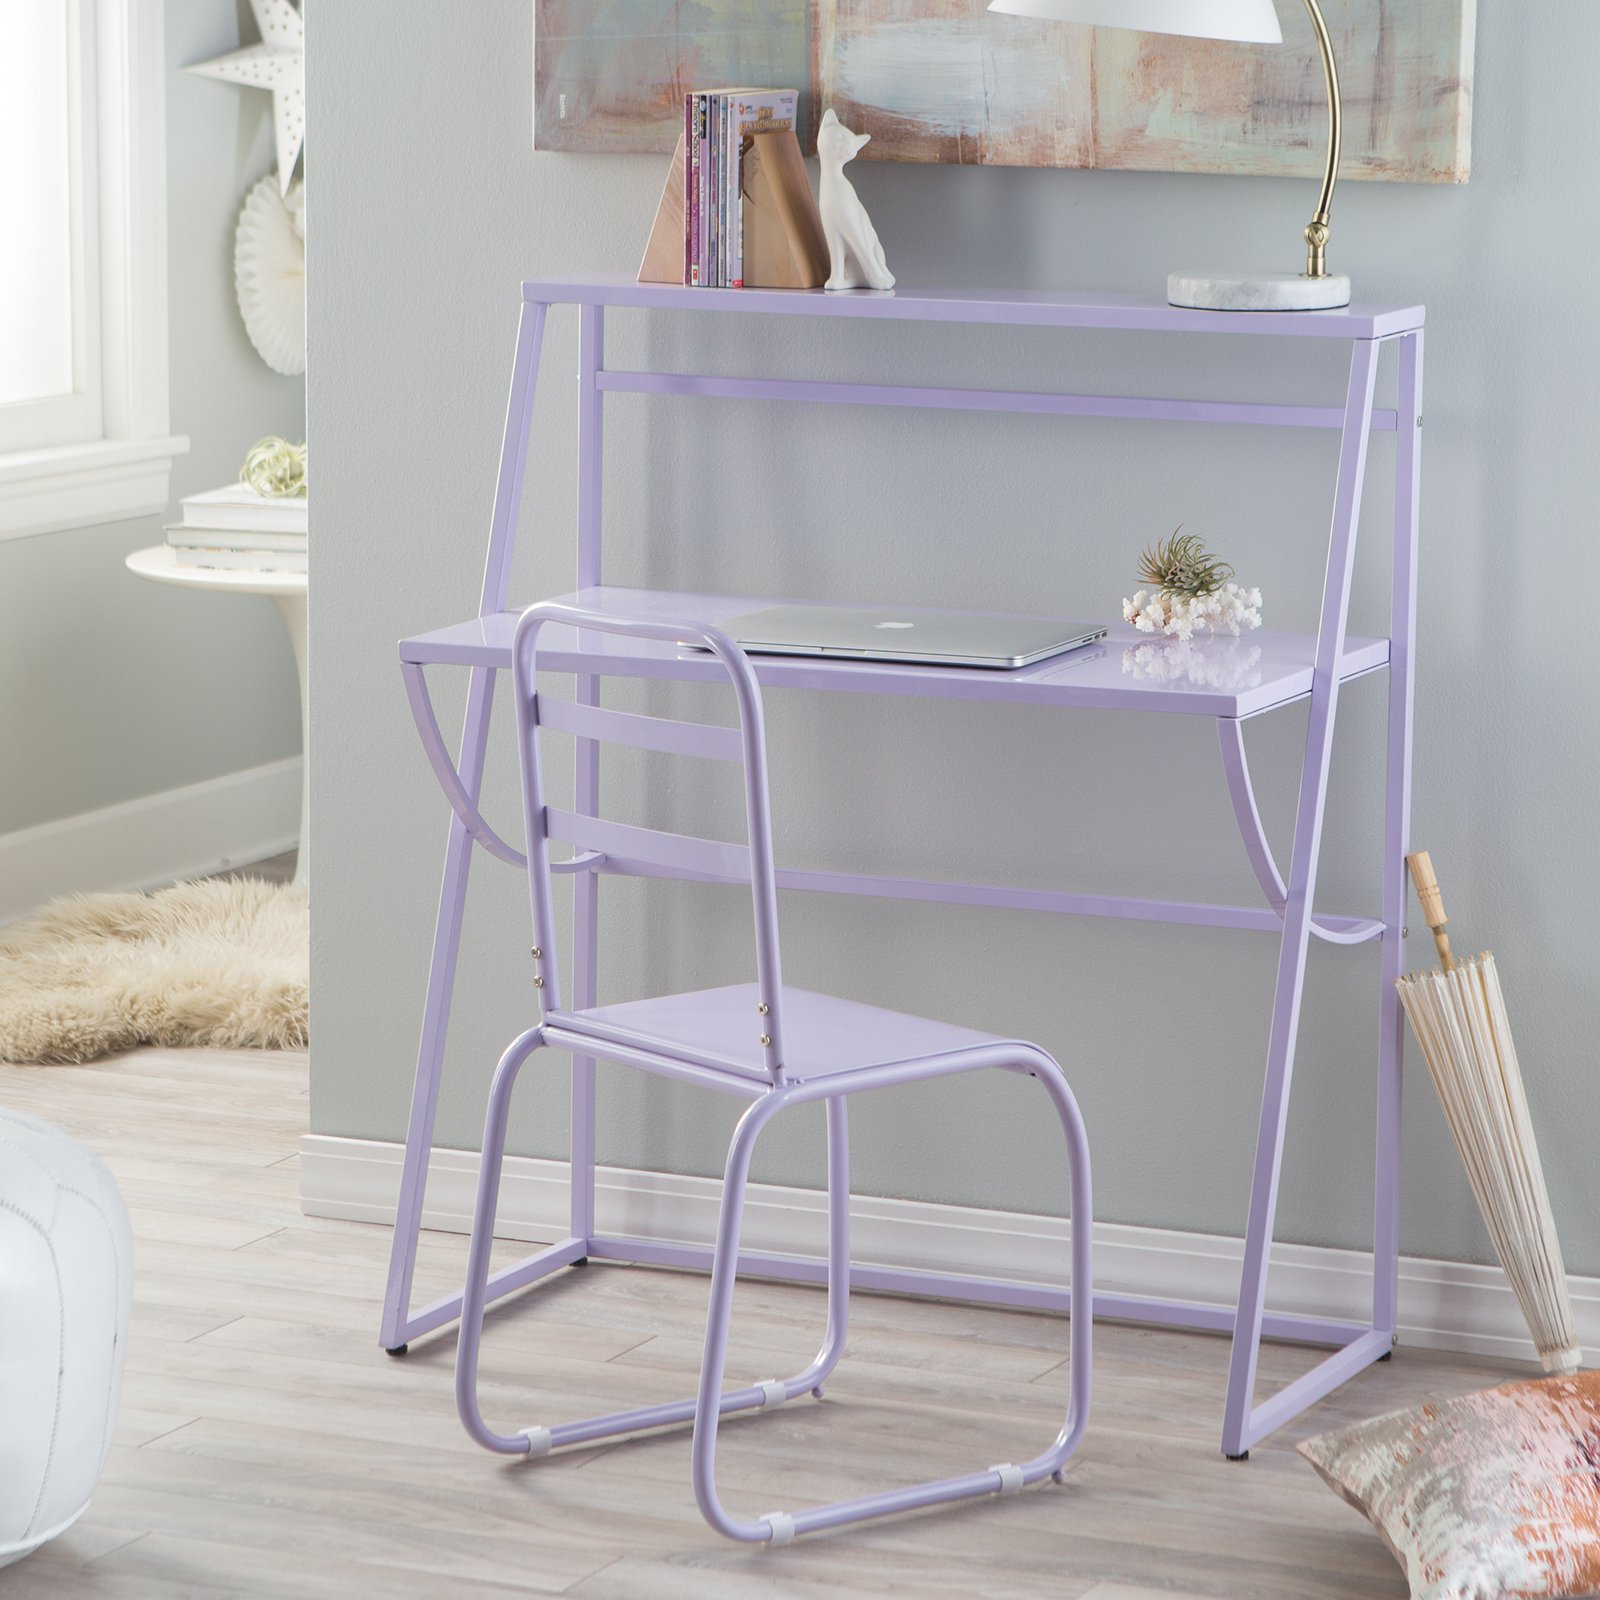 Classic Playtime Sydney Desk with Chair - Lavender